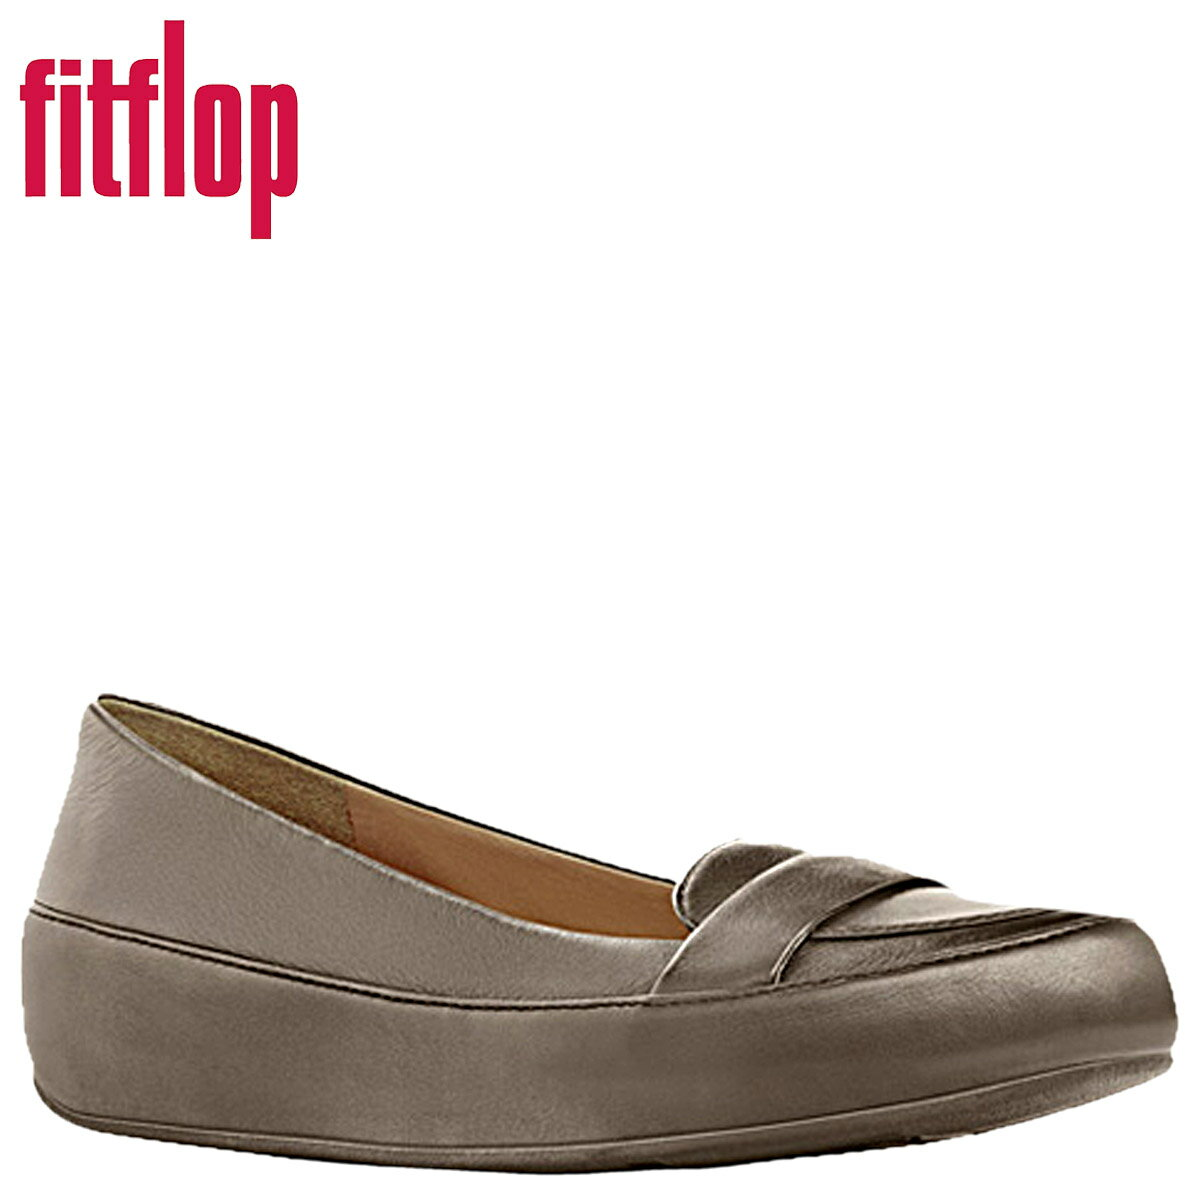 5ba7a9373 Fitflop Slippers Price In The Philippines - Avanti House School